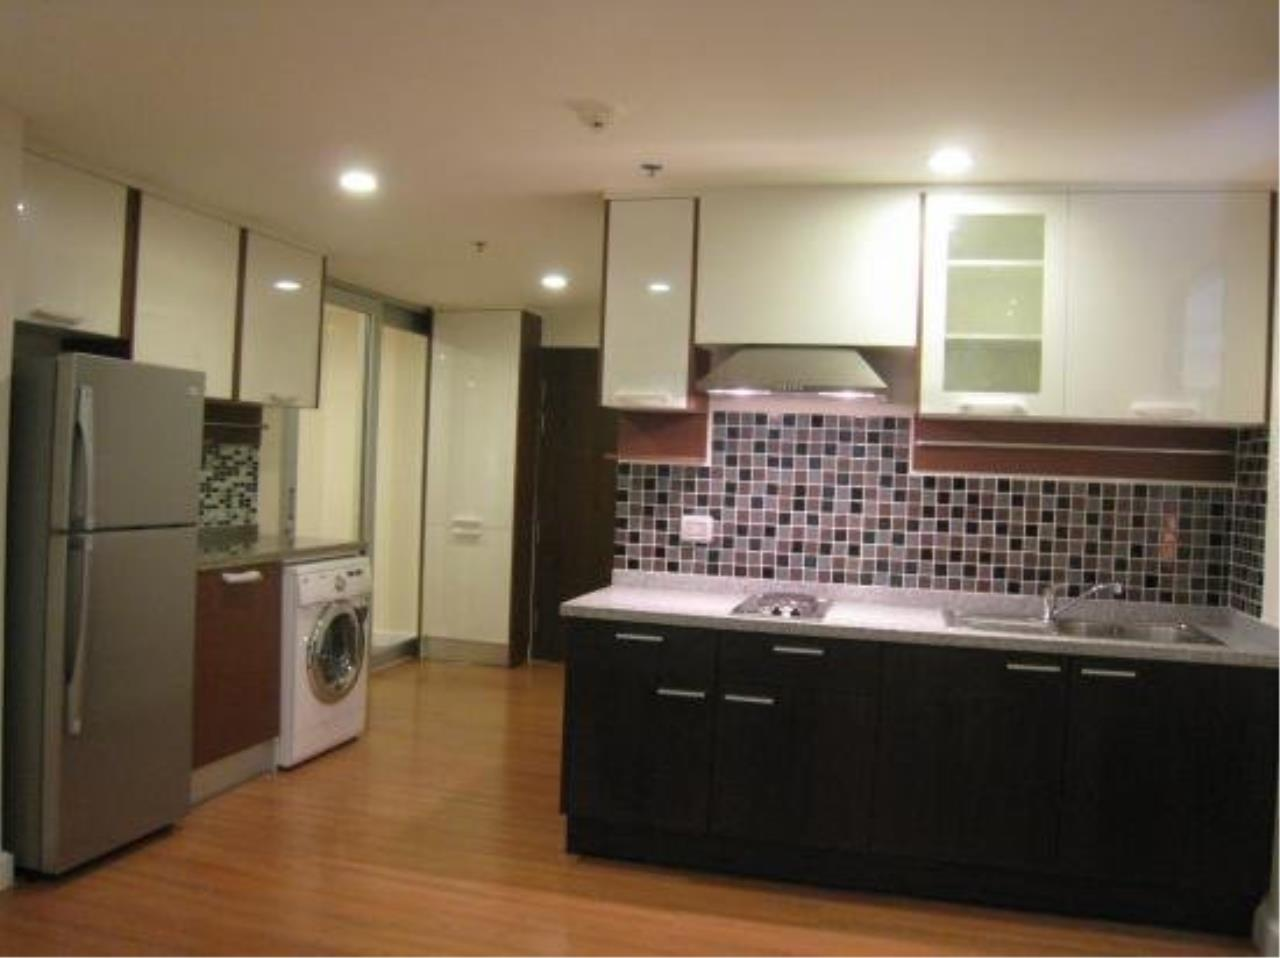 Piri Property Agency's Modern 2 Bedrooms in the The Trendy Condo for rent on high floor 4